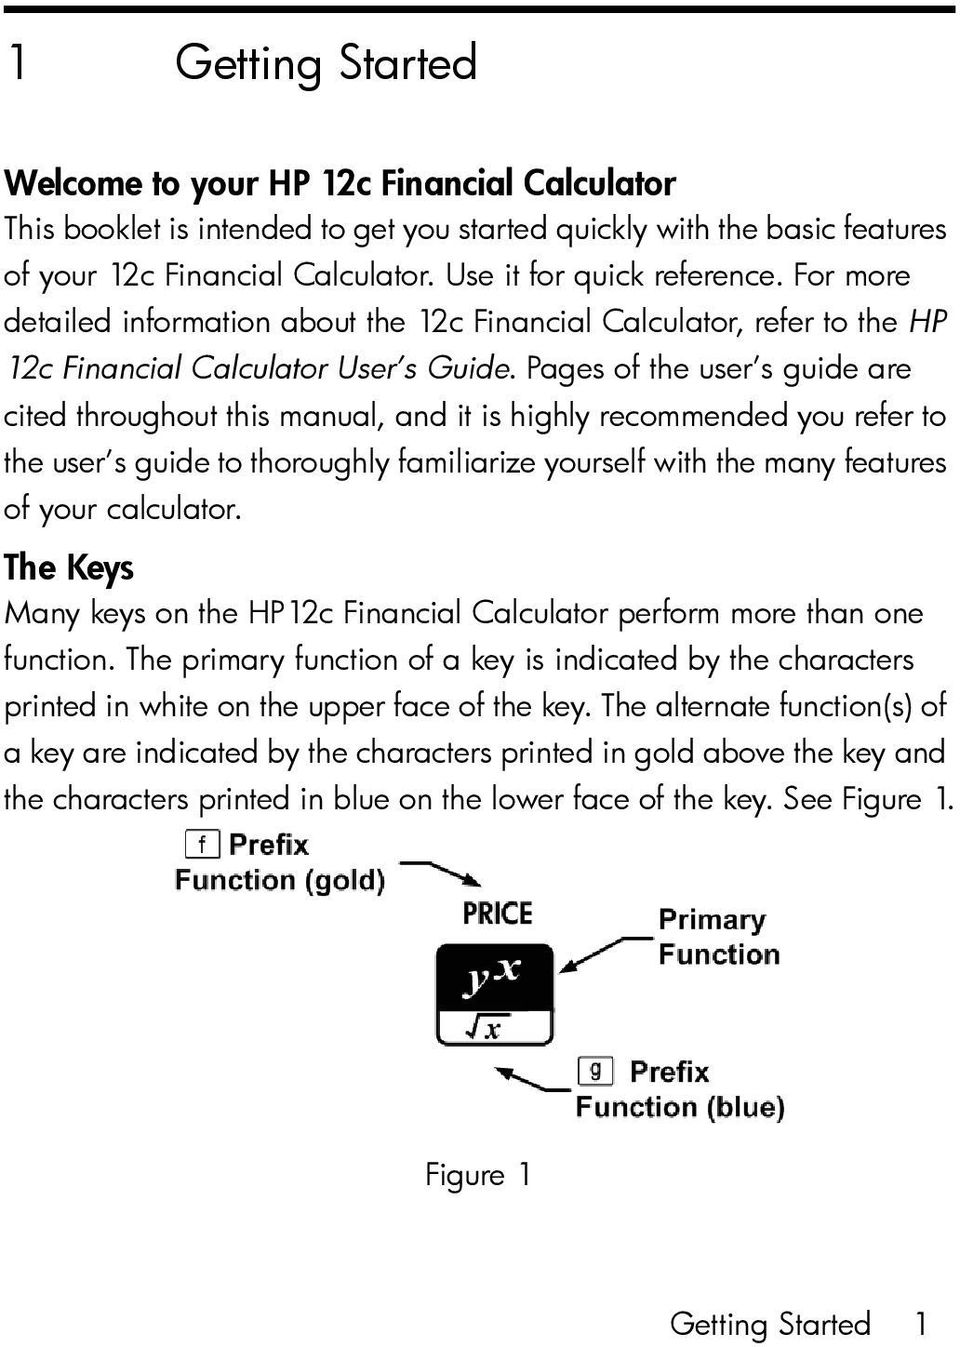 Pages of the user s guide are cited throughout this manual, and it is highly recommended you refer to the user s guide to thoroughly familiarize yourself with the many features of your calculator.